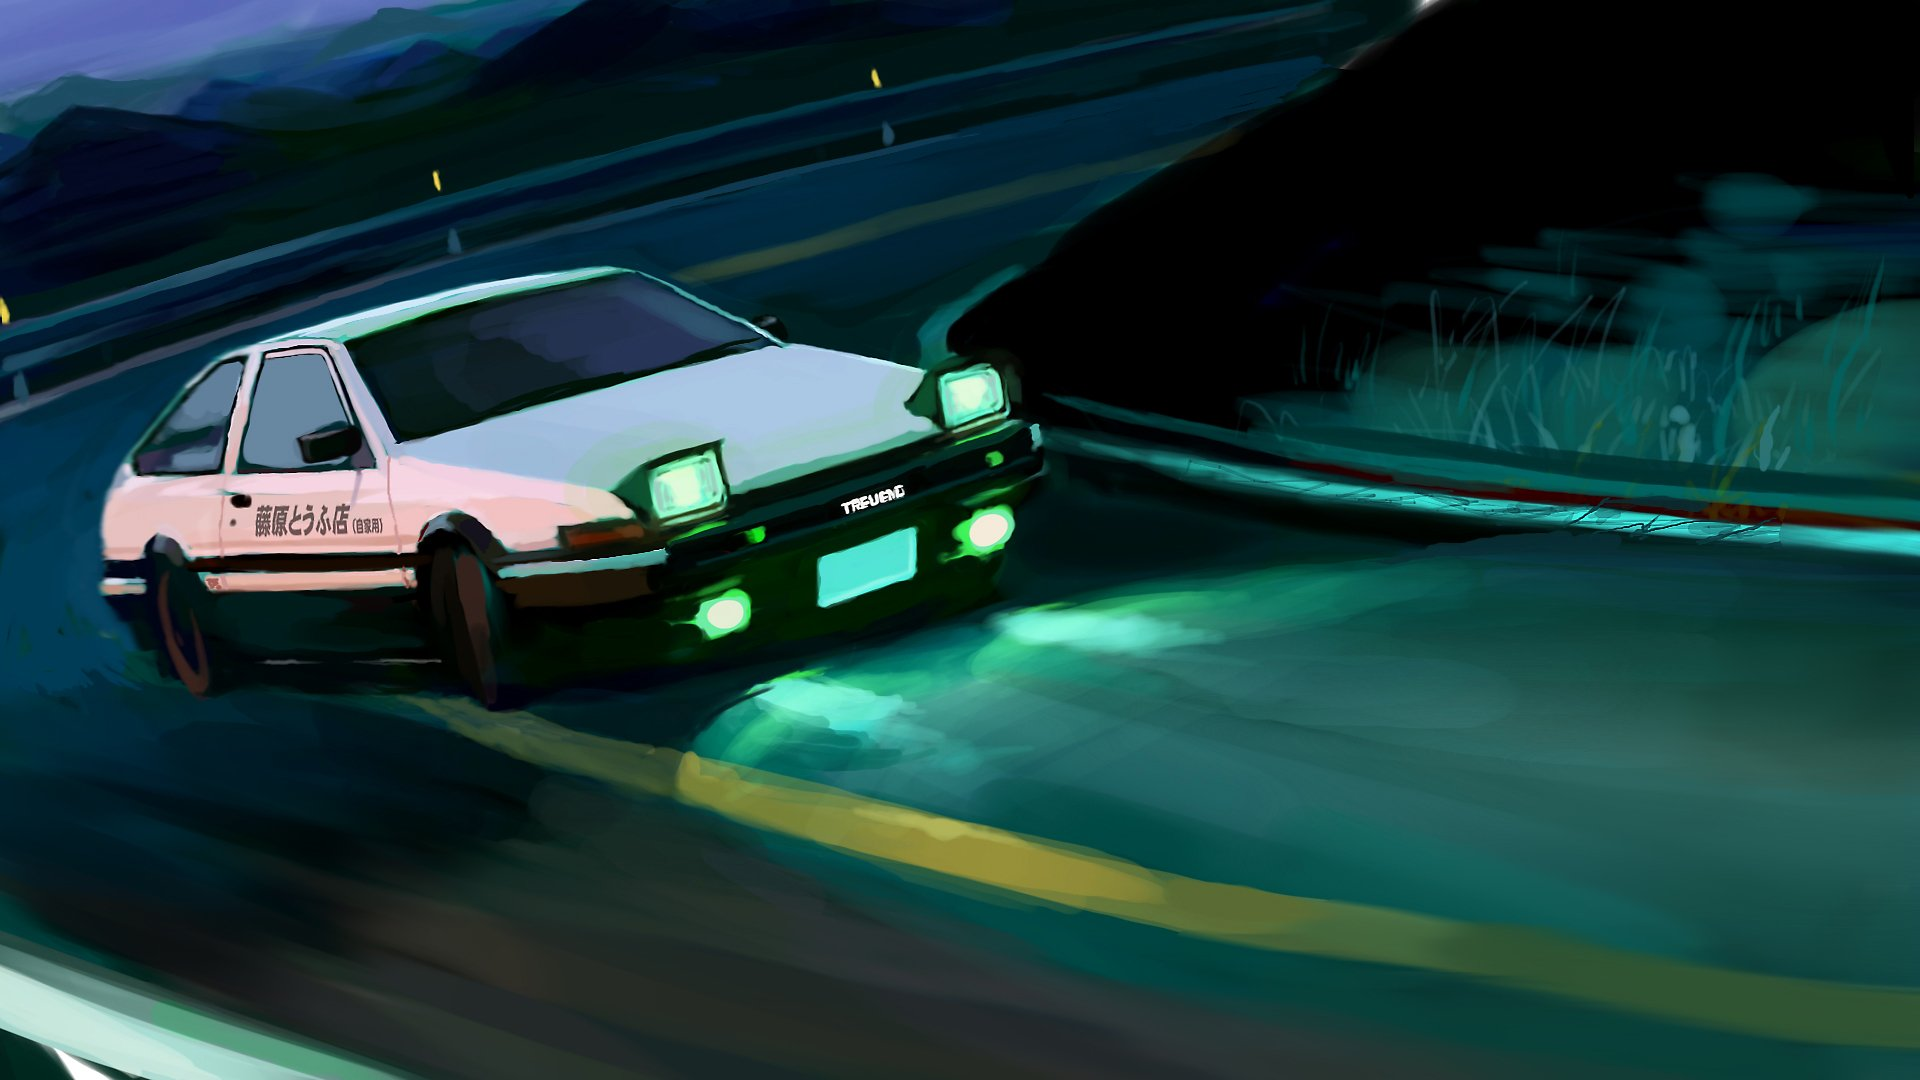 1920 Car Synthwave Wallpaper Initial D Final Stage Hd Wallpaper Background Image